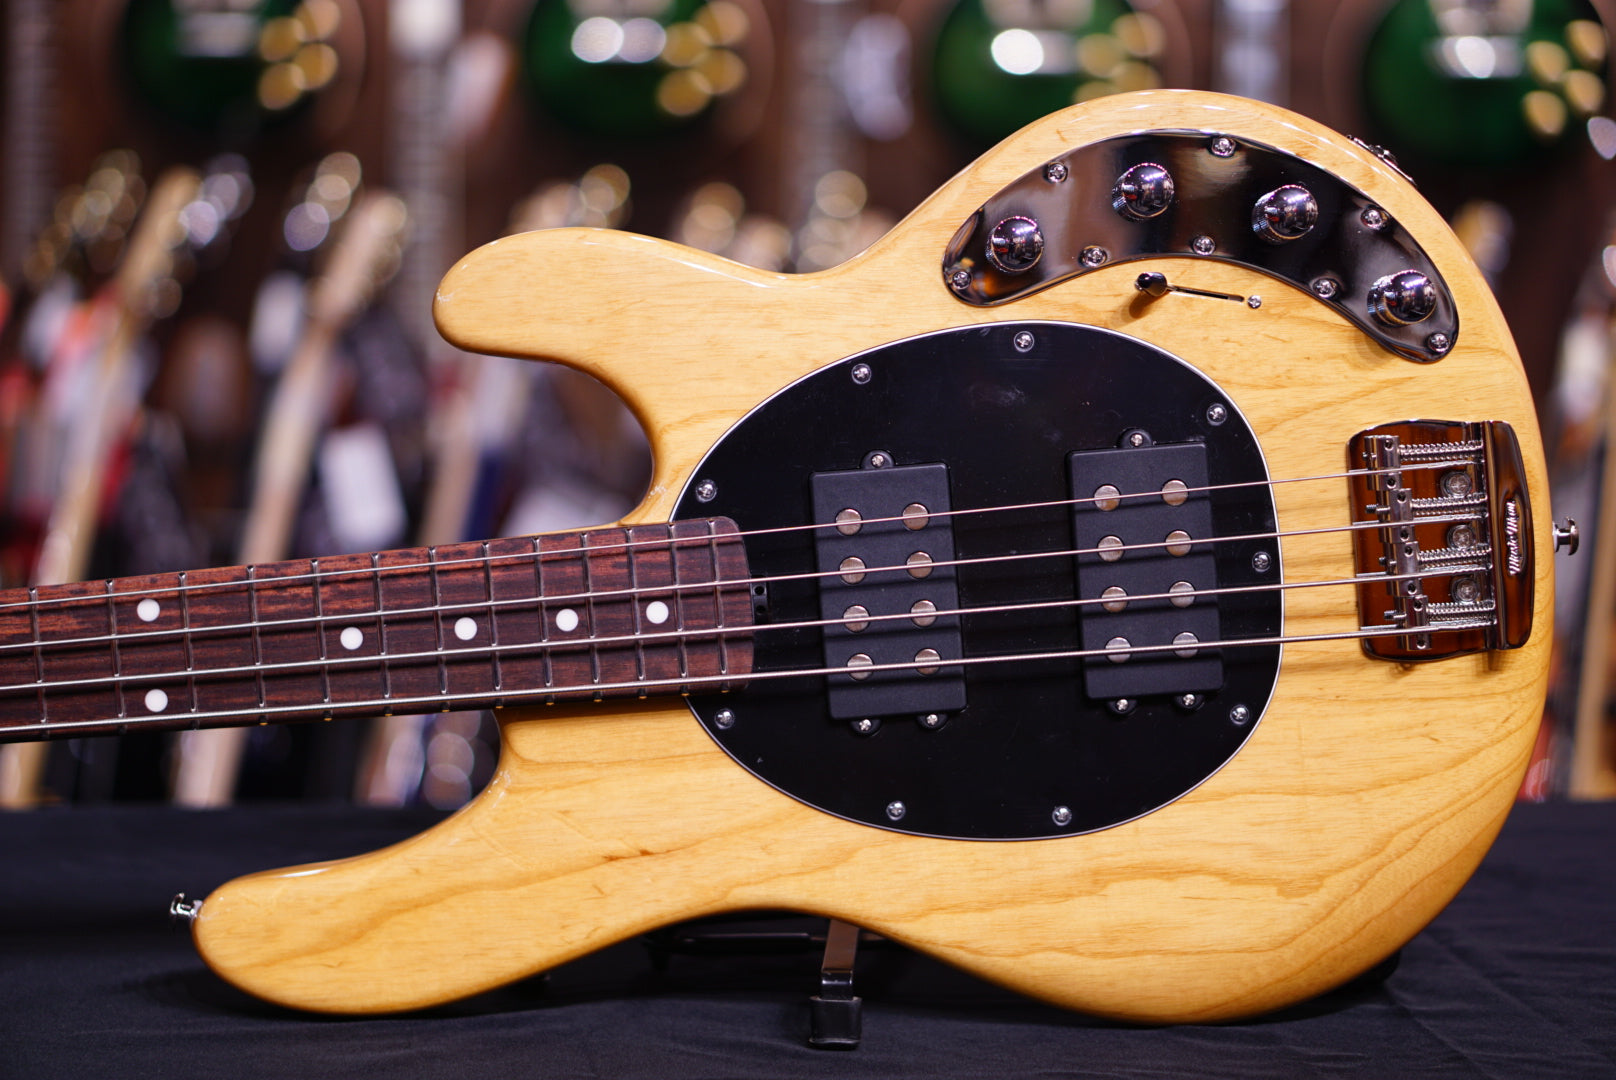 Ernie Ball Music Man StingRay Special 4HH - Classic Natural with Rosewood Fingerboard F81095 HIENDGUITAR.COM - HIENDGUITAR.COM